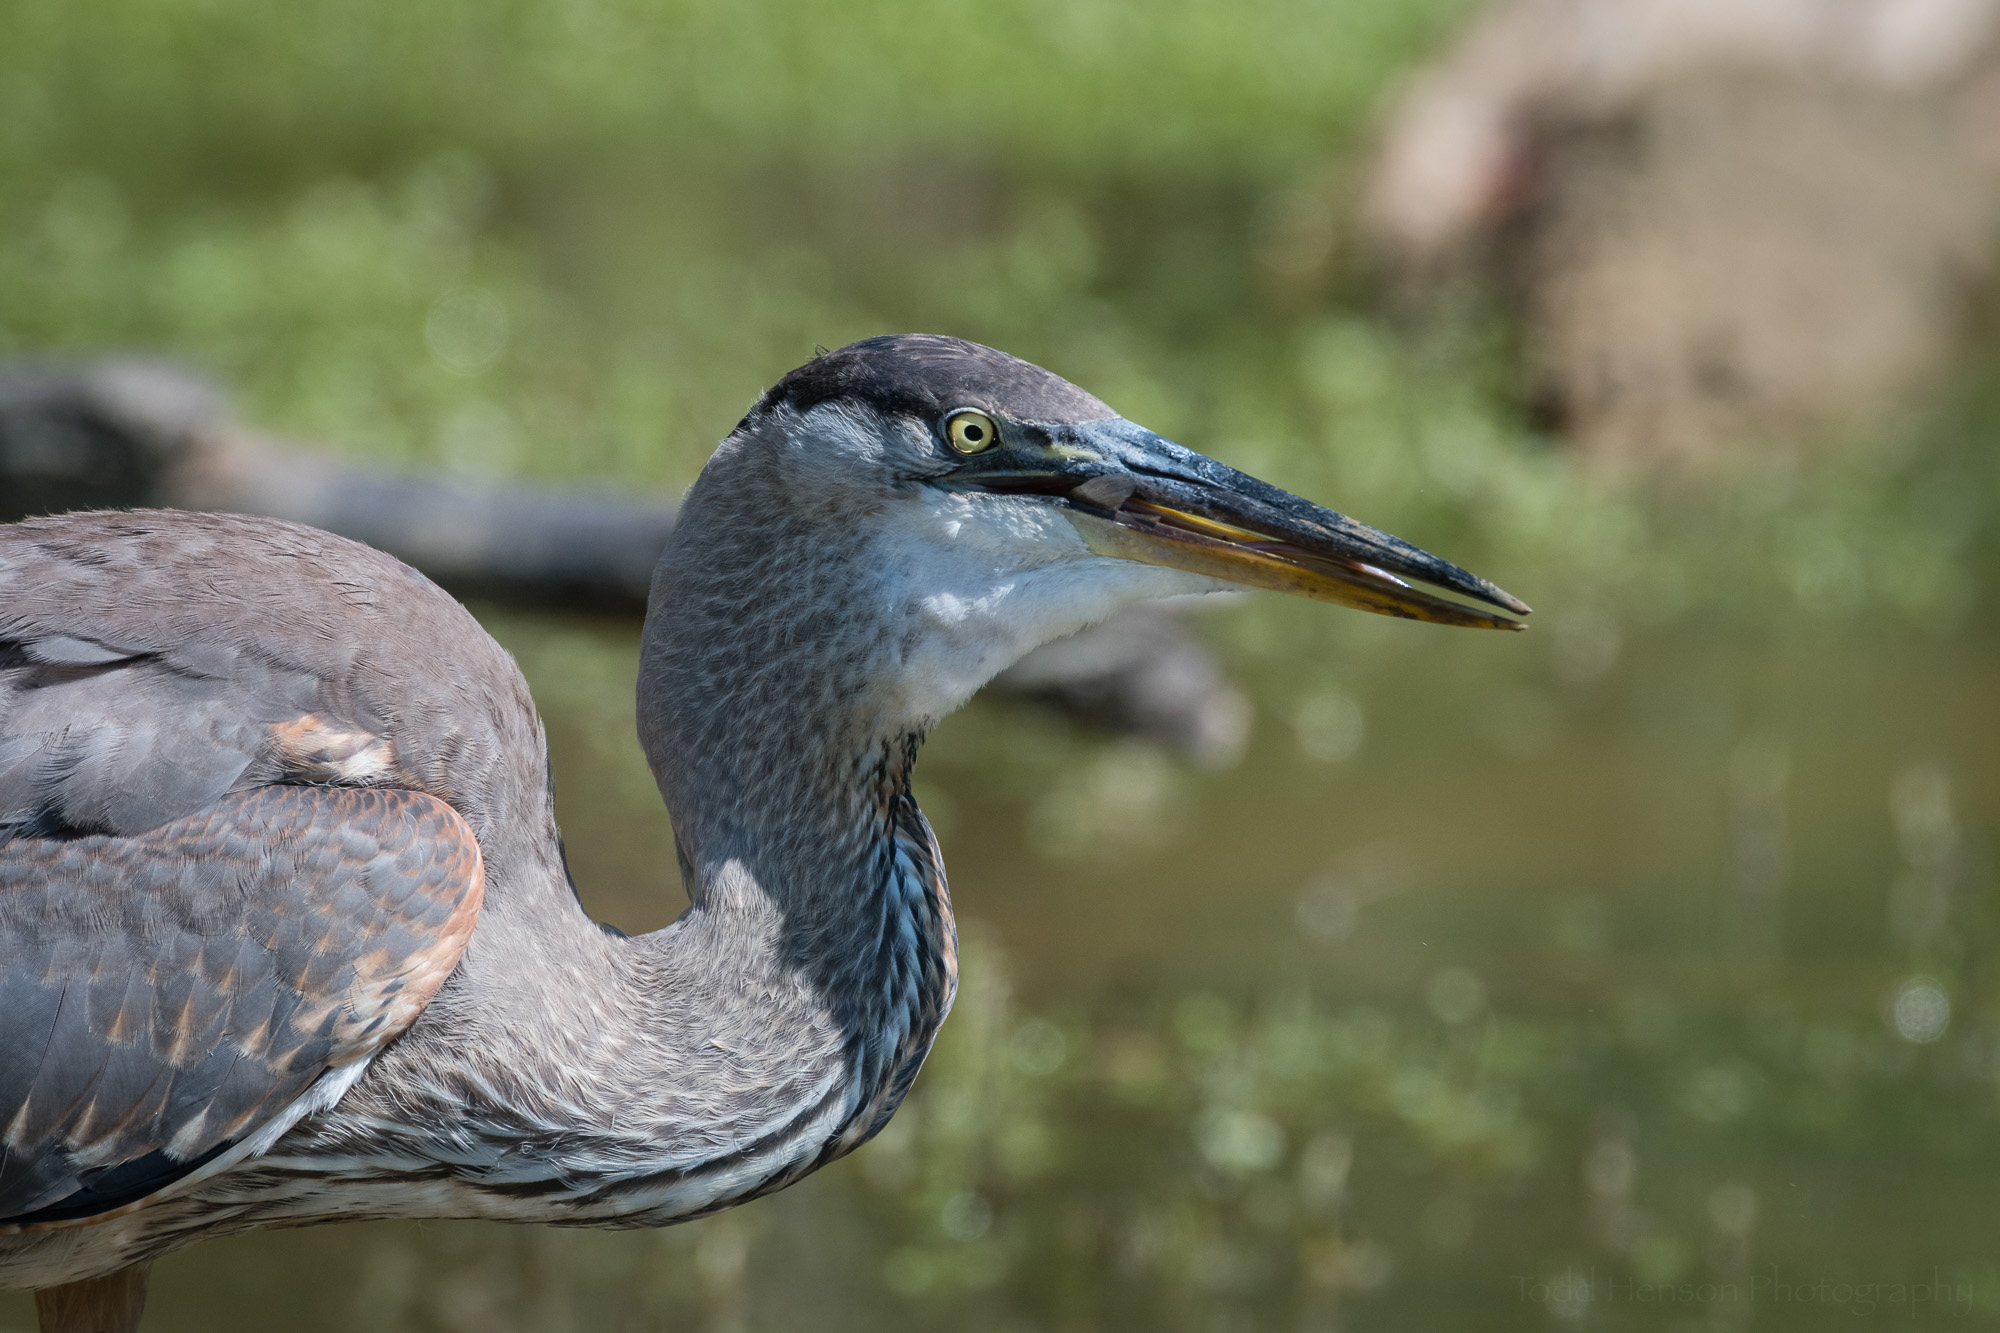 And in it goes, with only the tail of the fish sticking out of the Great Blue Heron's beak.